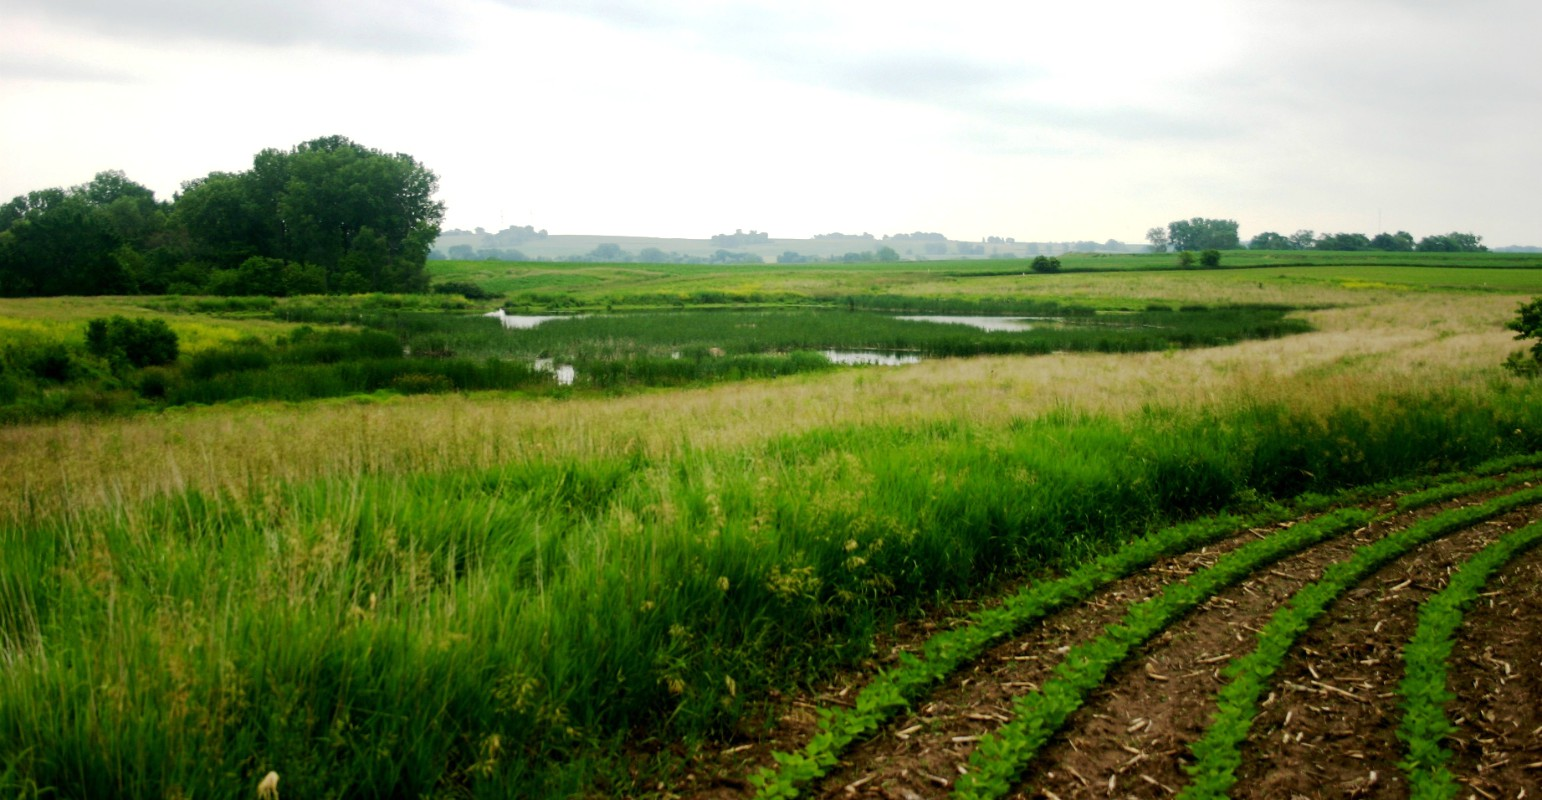 Find best conservation practices for your farm